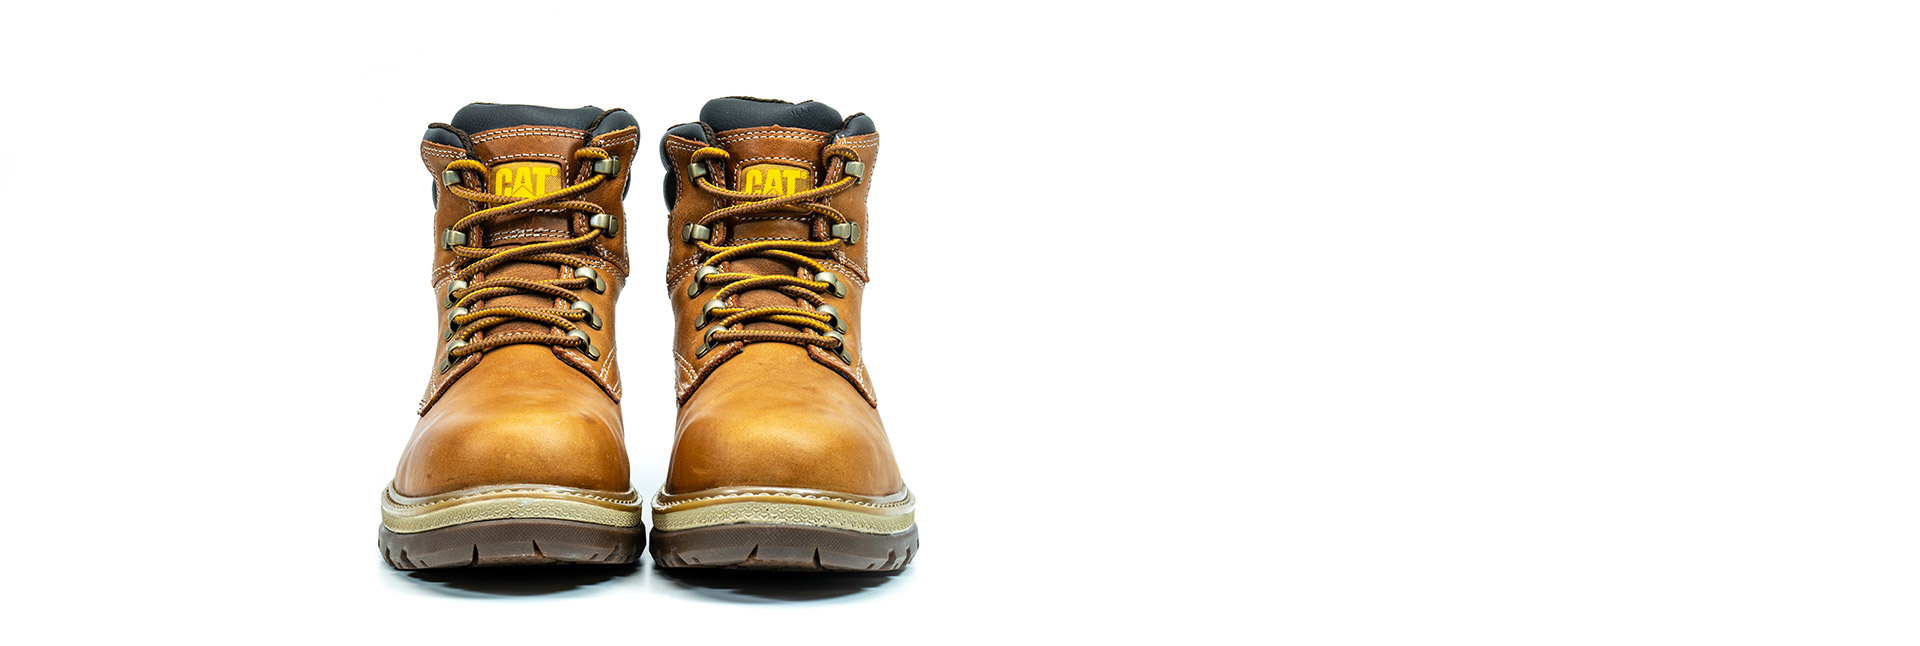 Pair of leather light brown CAT workboots facing the viewer